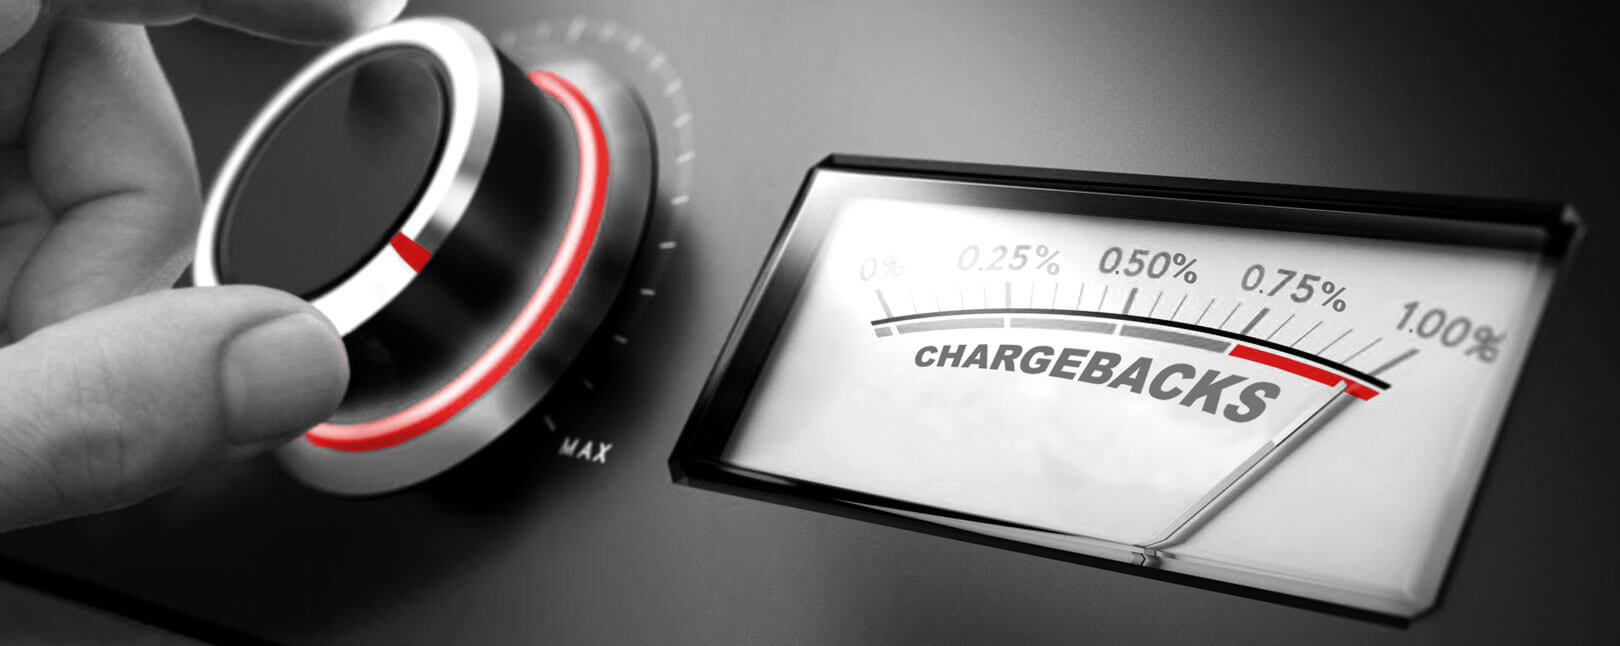 ab5b81482db30 Chargeback Rate - What's Normal & How is it Calculated